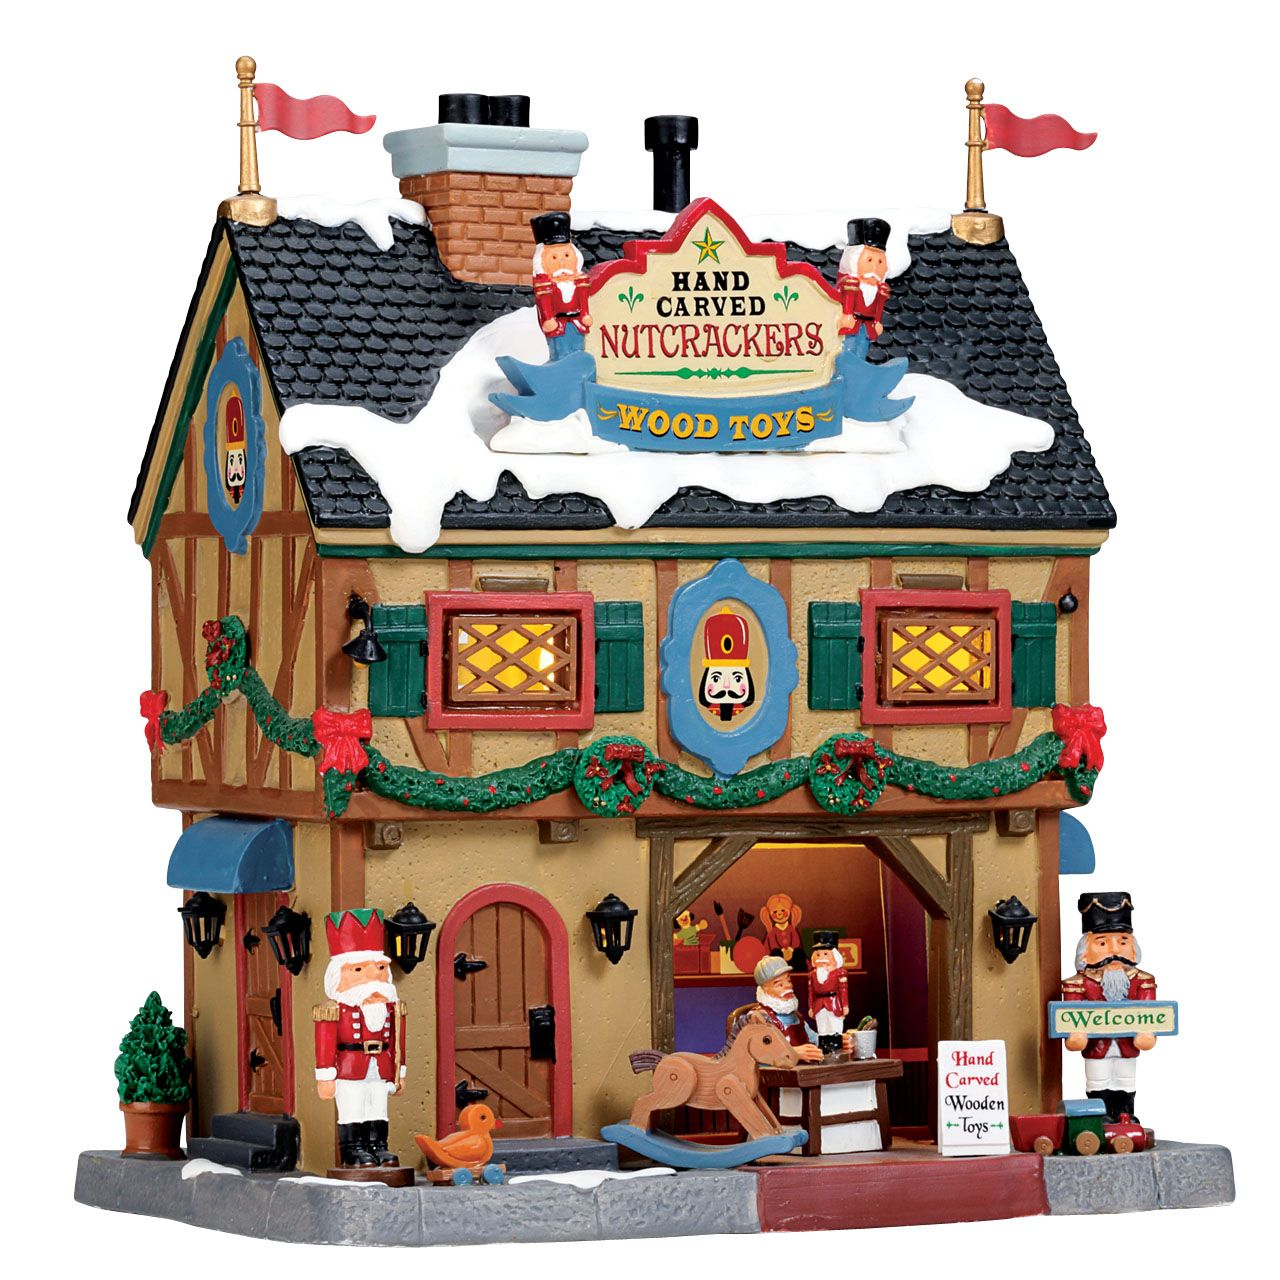 Lemax Nutcracker & Wood Toy Carve. SKU# 55994. Released in 2017 as a ...